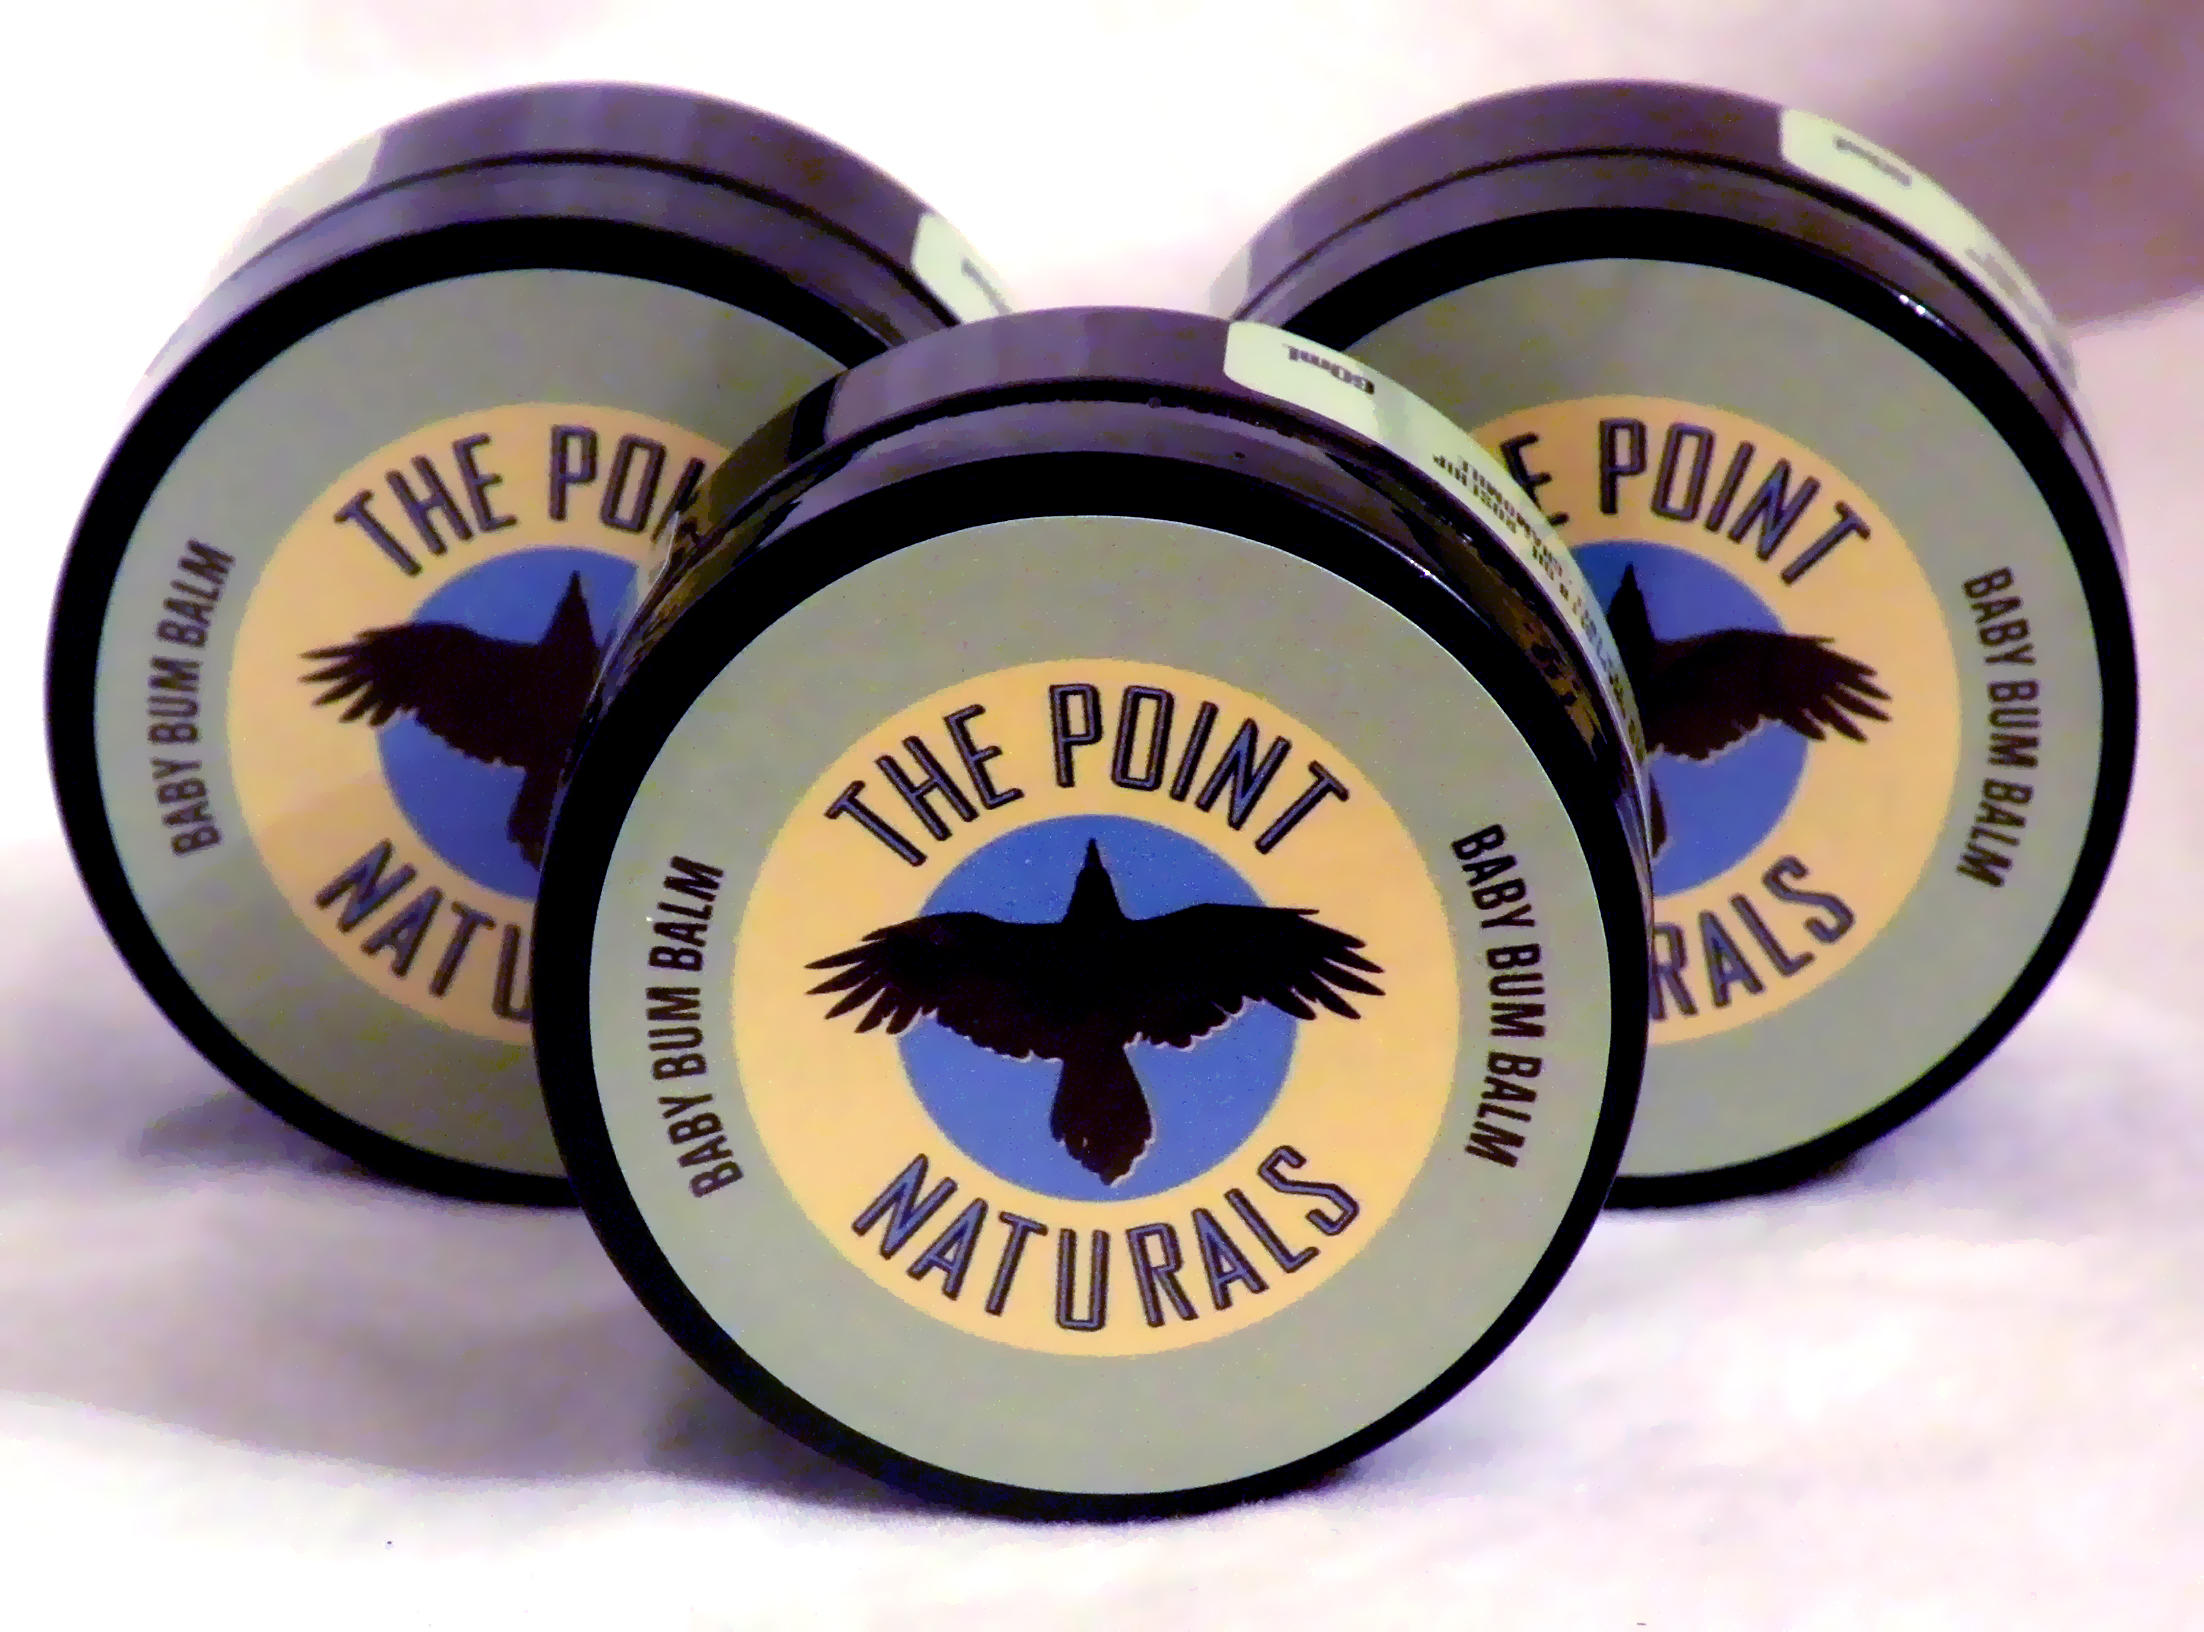 The Point Naturals Product Label